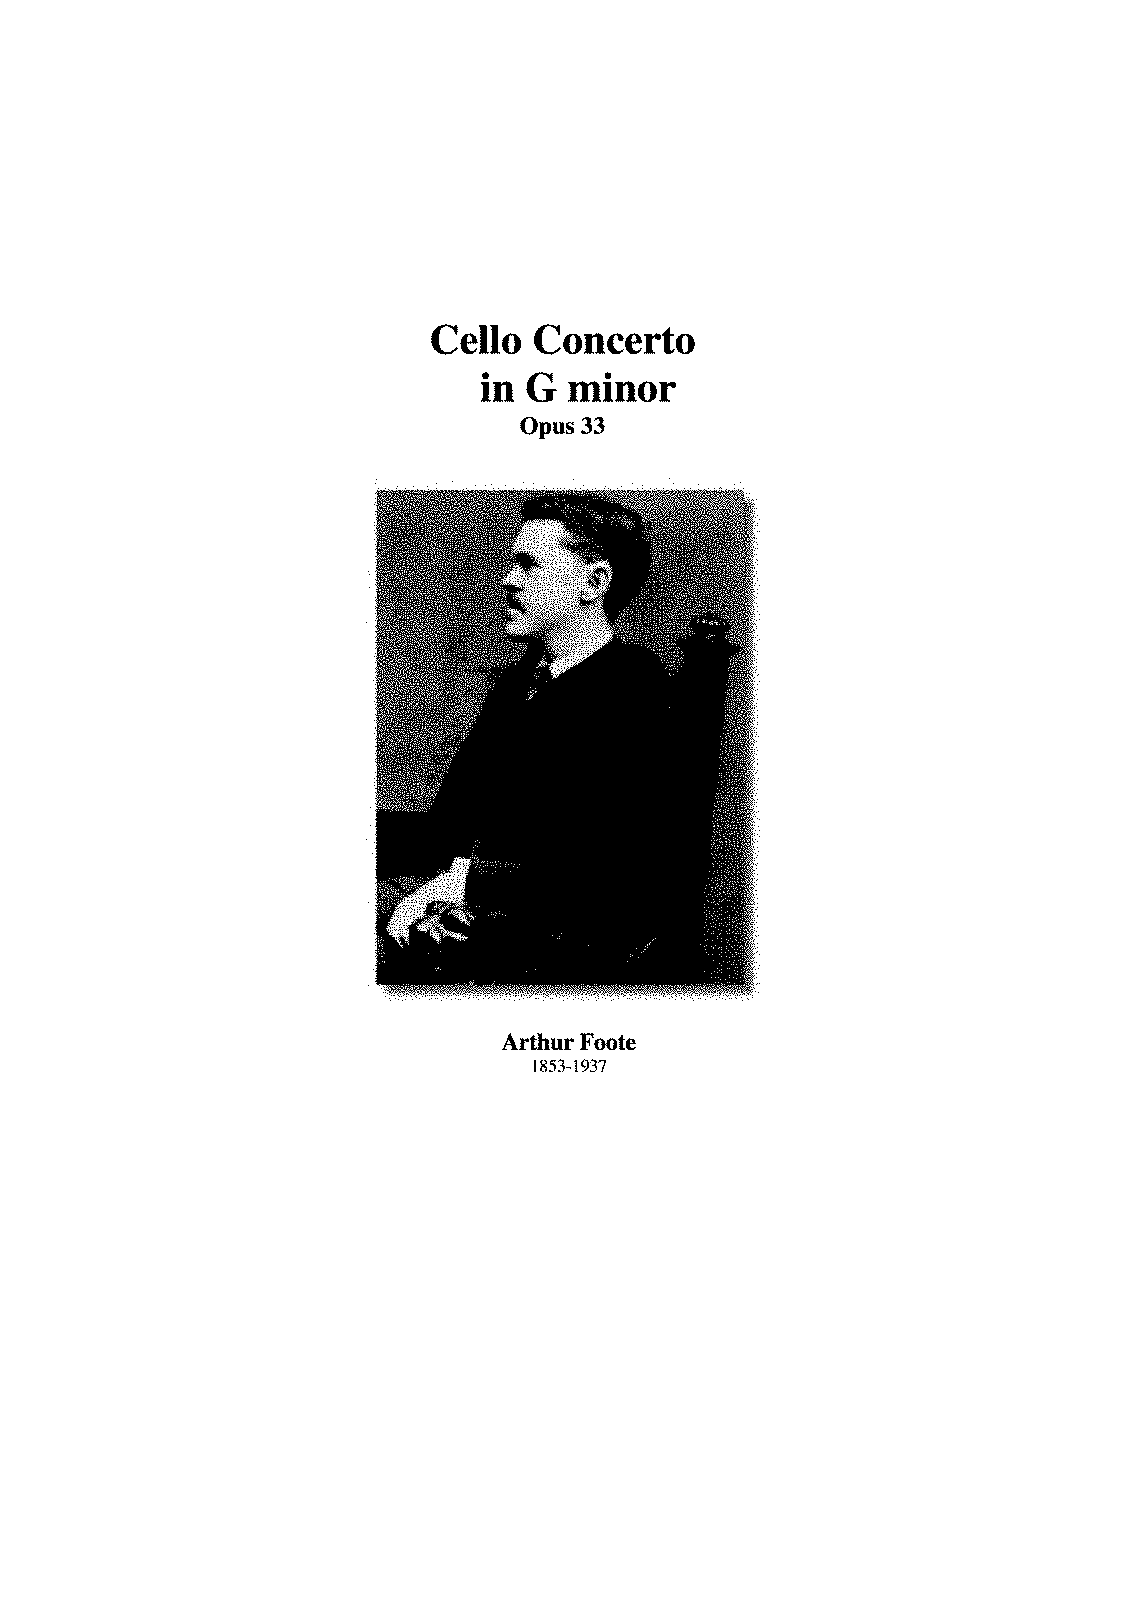 PMLP103976-Foote Cello Concerto in A4.pdf